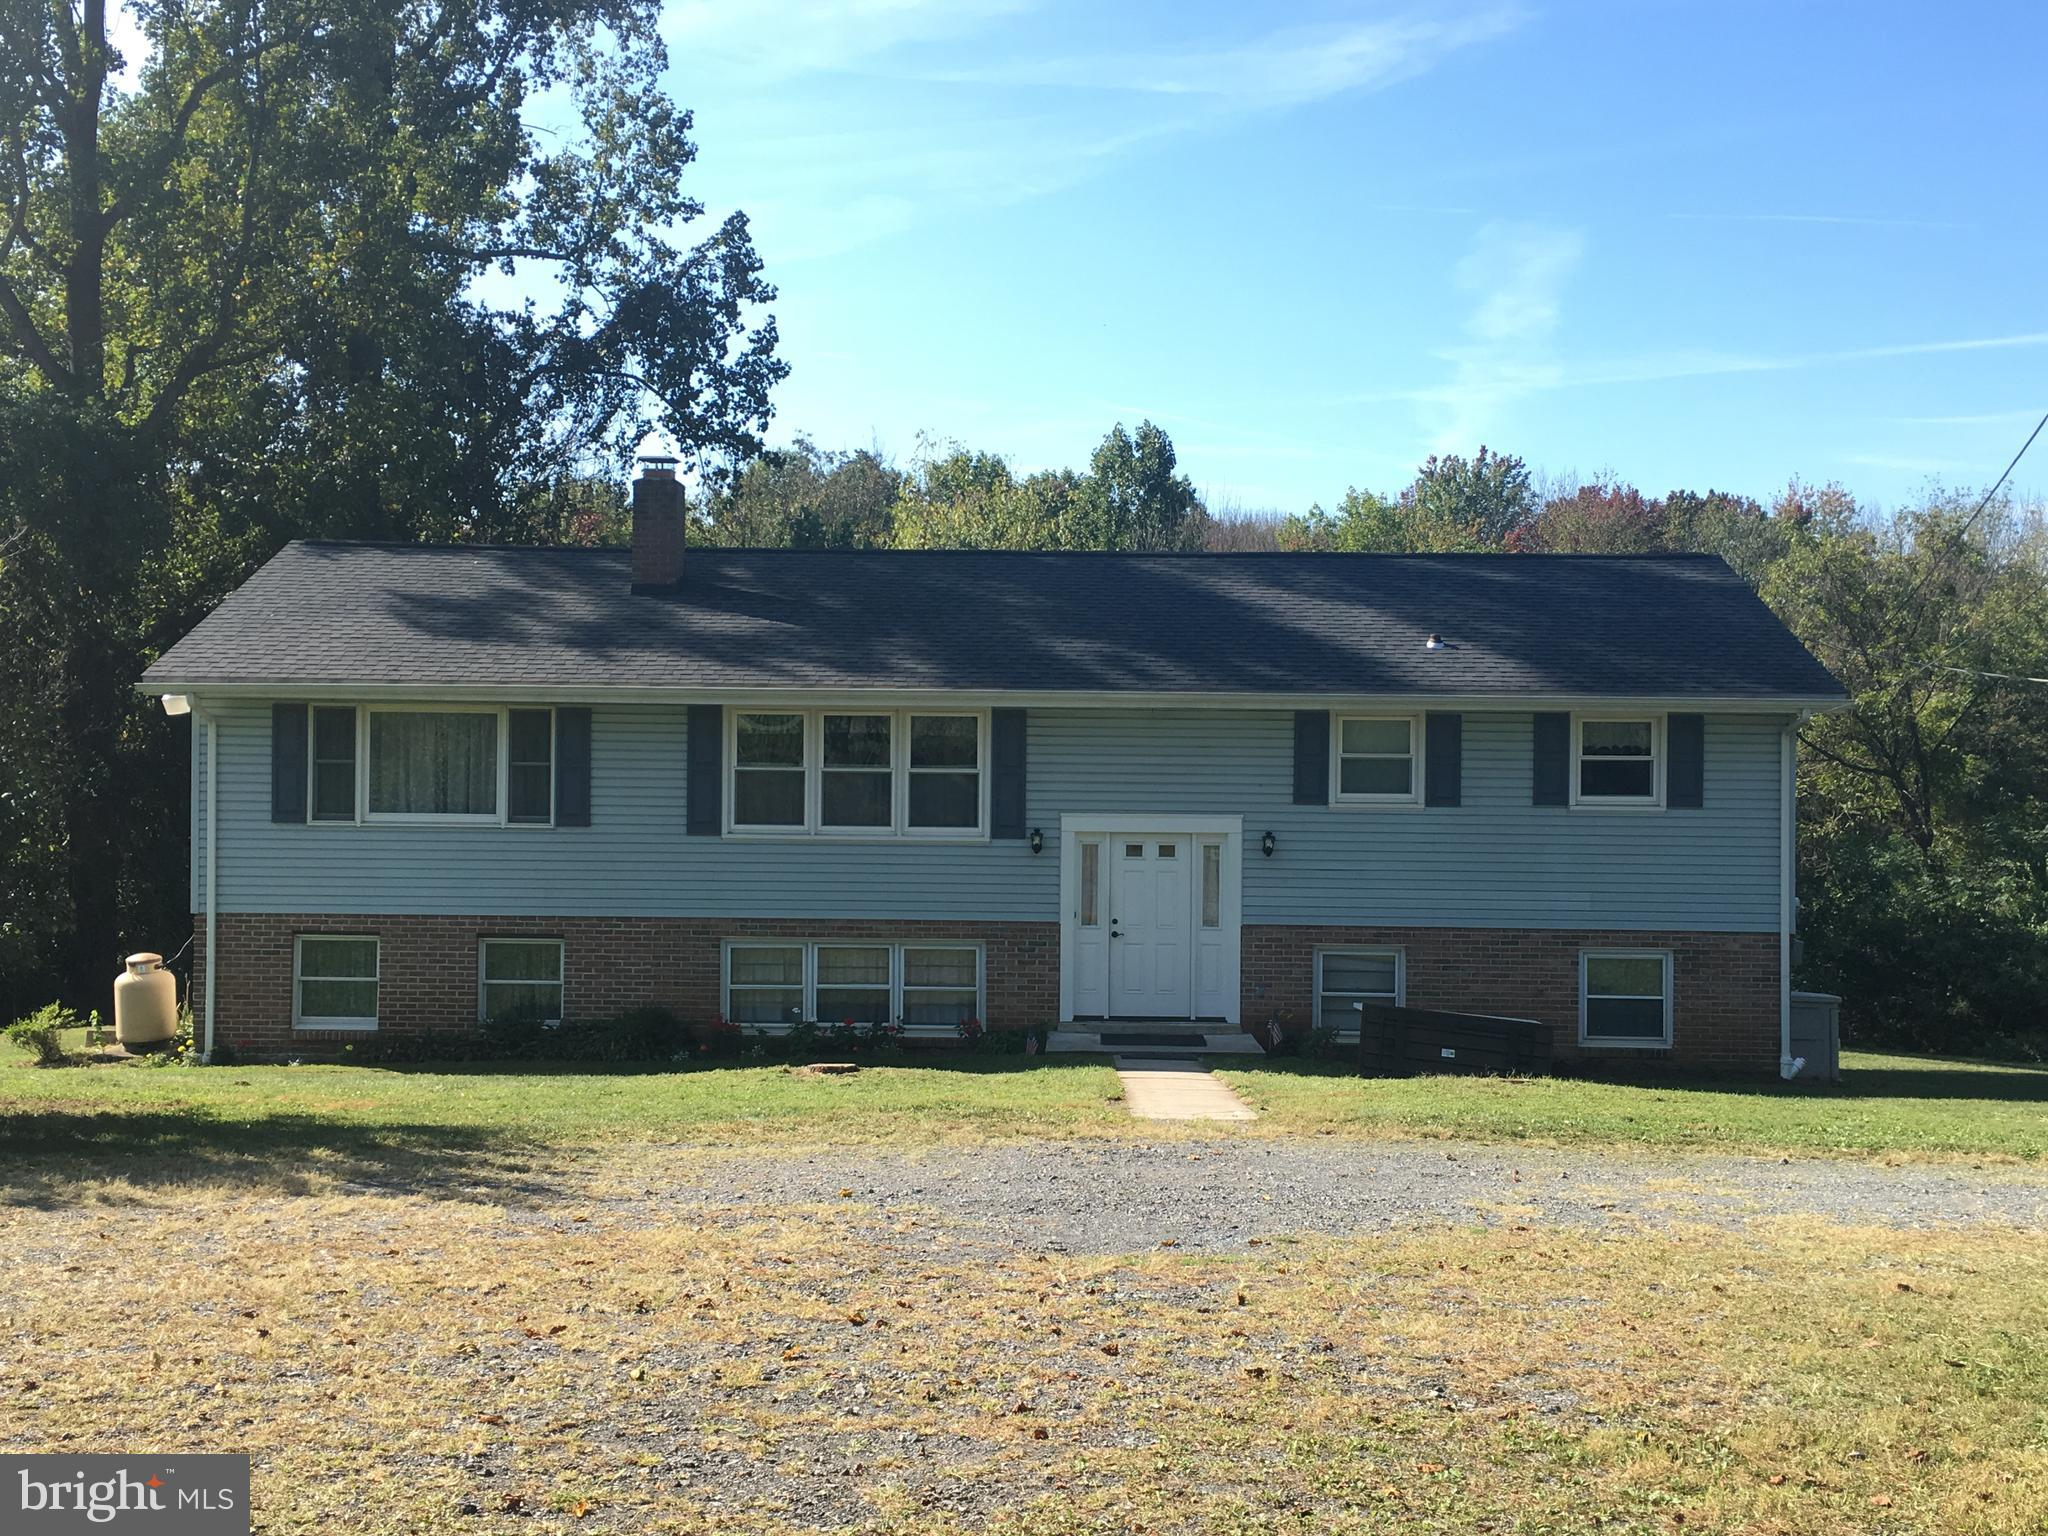 1090 FOREST HILL ROAD, STEVENS, PA 17578